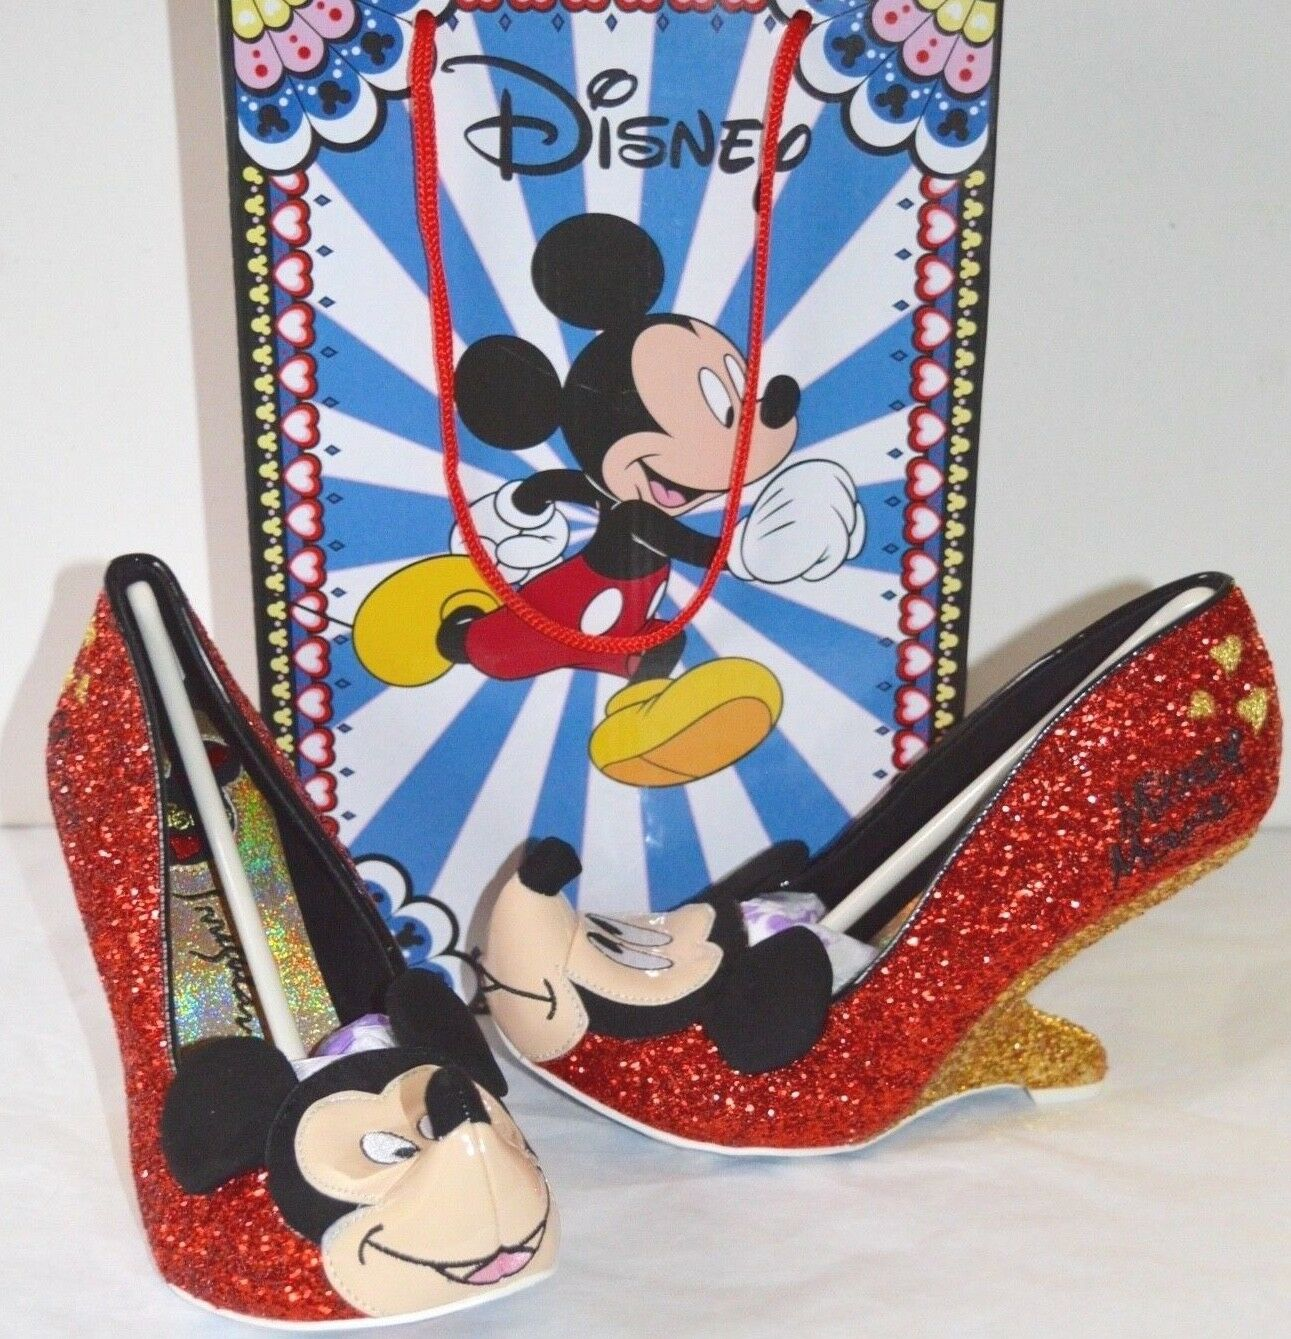 New Irregular Choice Disney  Oh Boy   Mickey Mouse Red gold Glitter 38 7 RARE